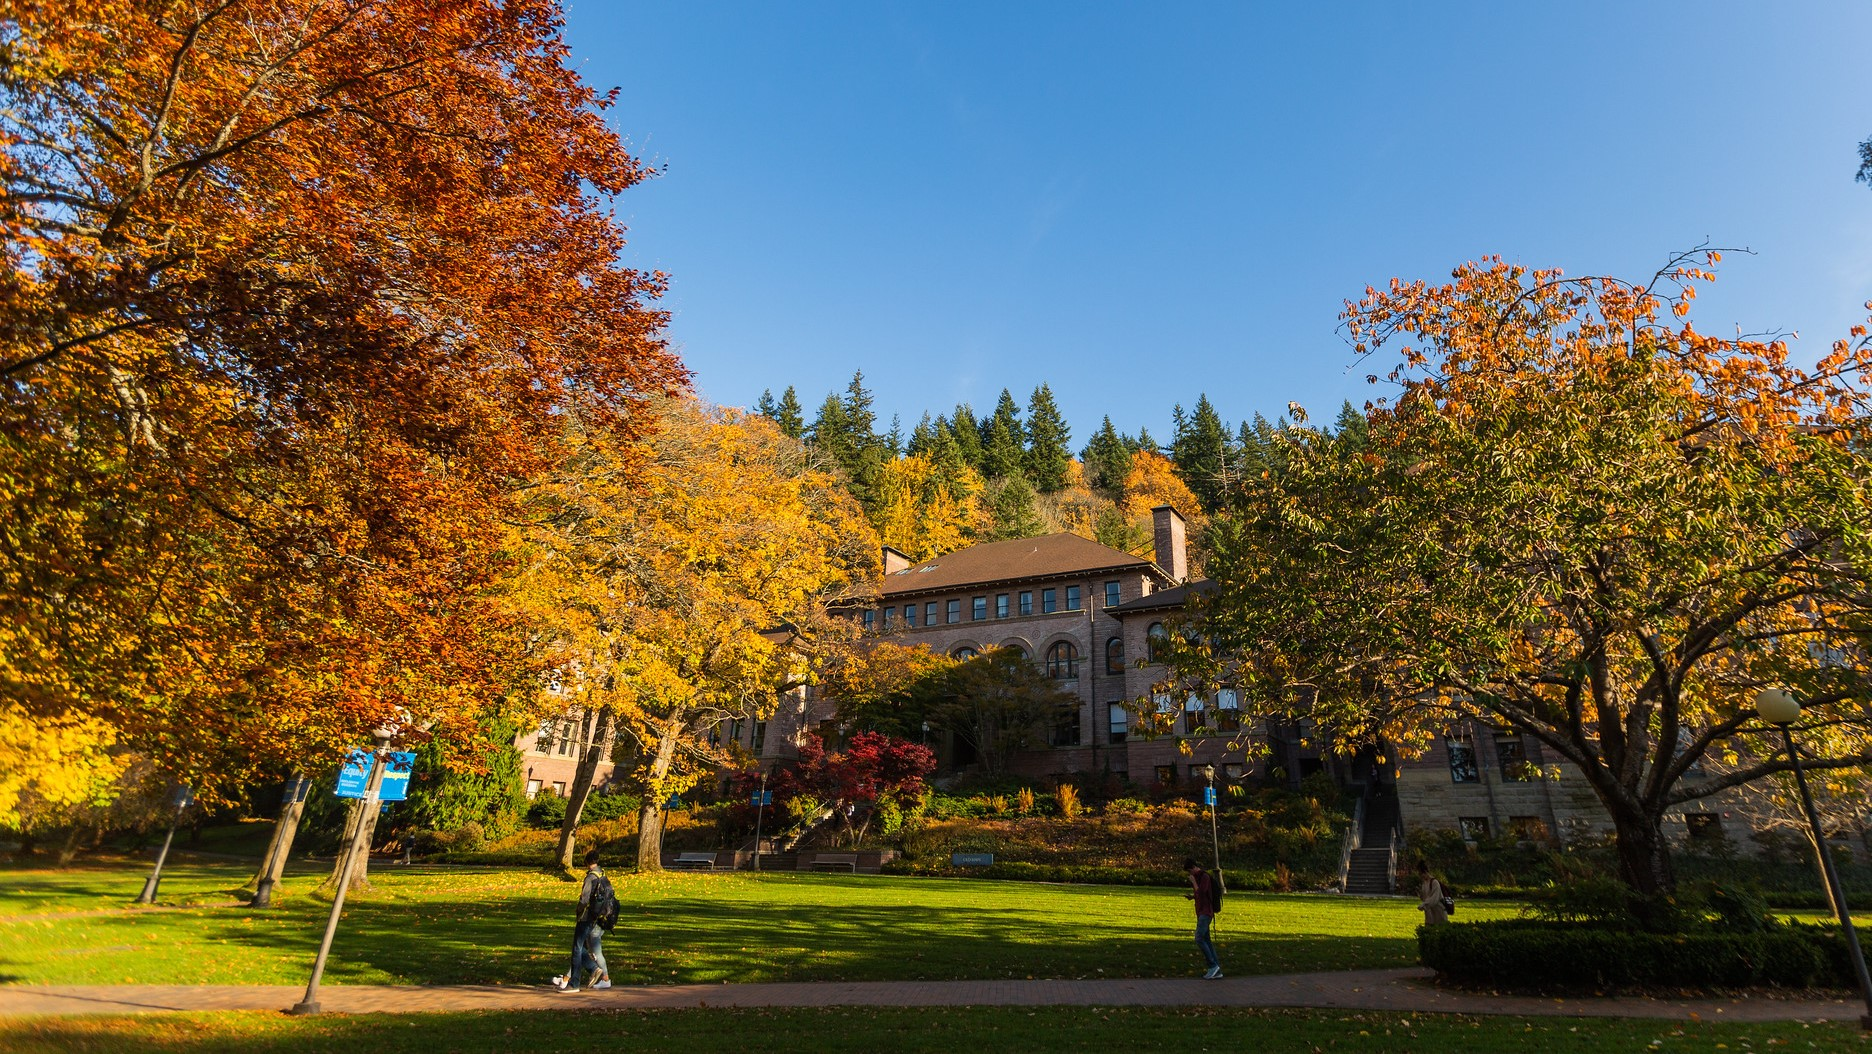 Old Main surrounded by trees with yellow and orange leaves in fall